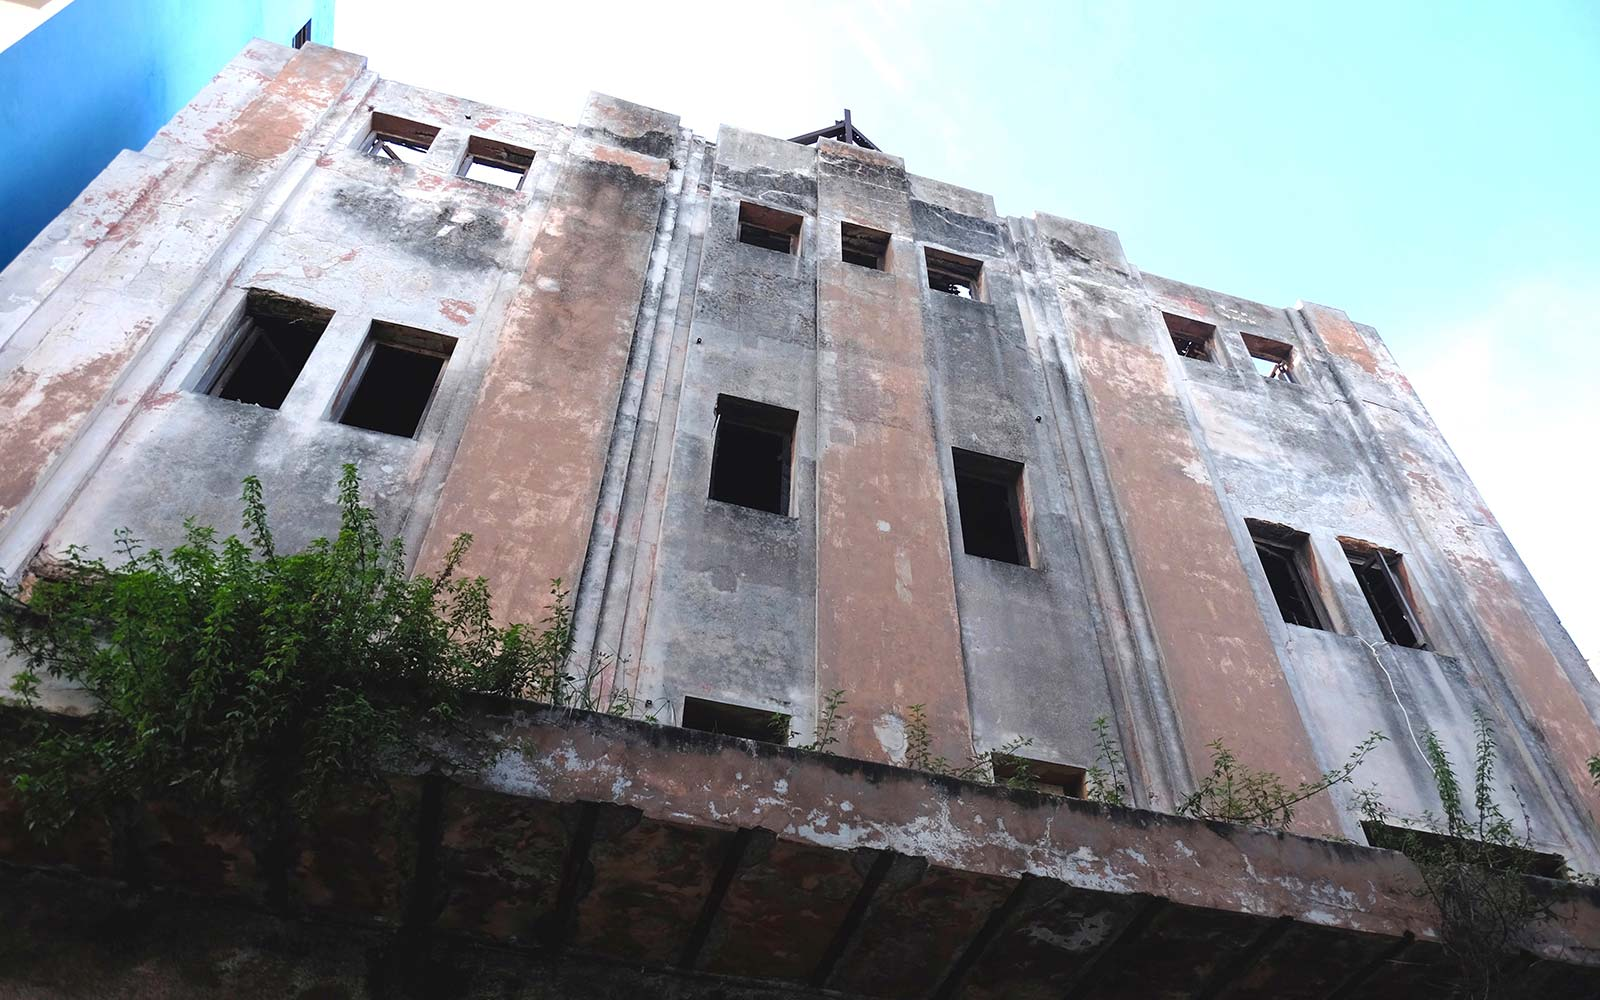 Abandoned buildings in Cuba